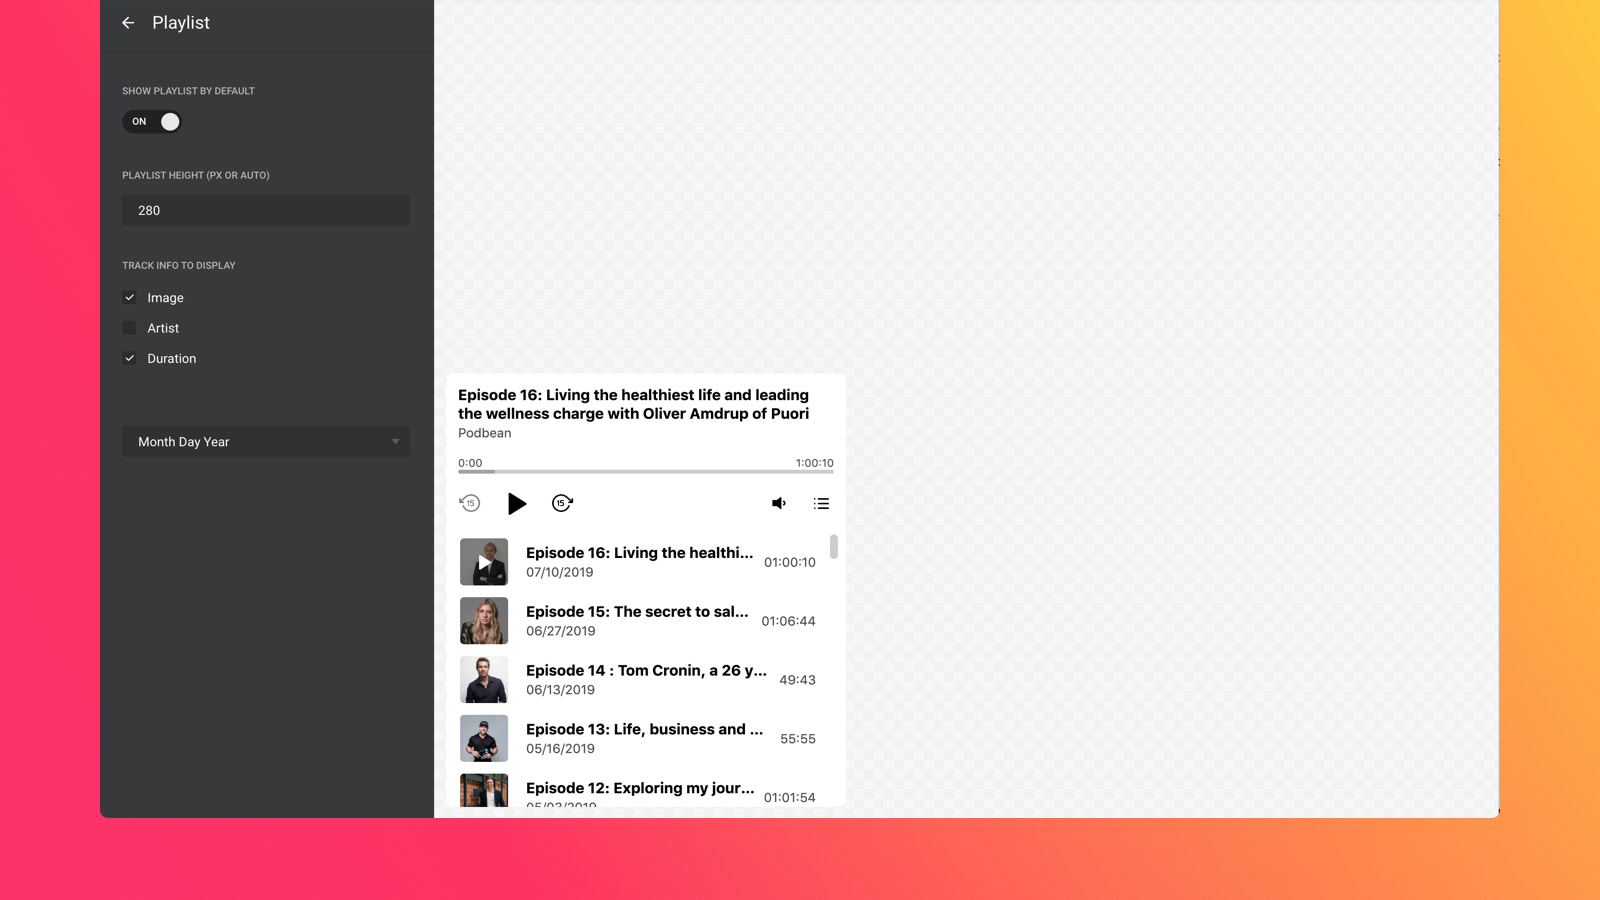 Show the playlist by default or hide it to give users control